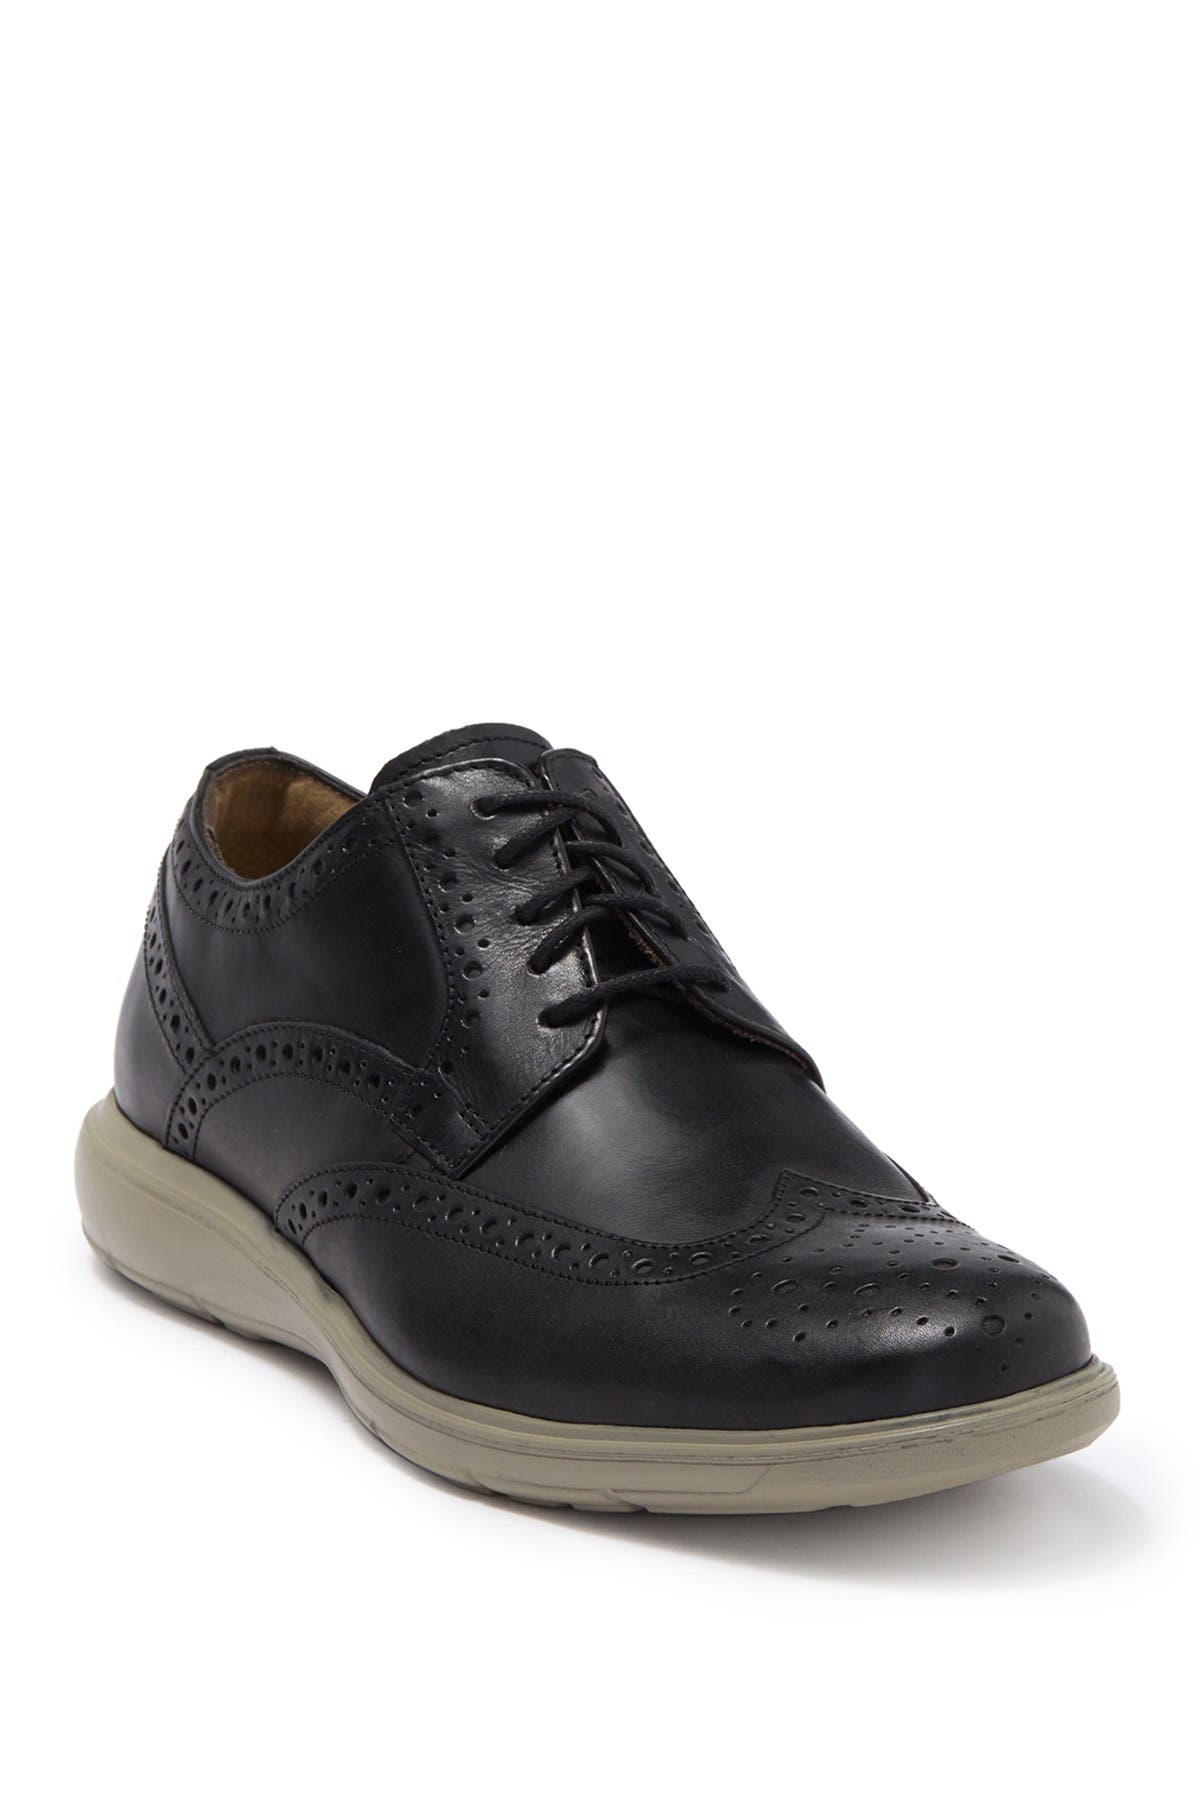 Image of Florsheim Indio Wingtip Oxford Sneaker